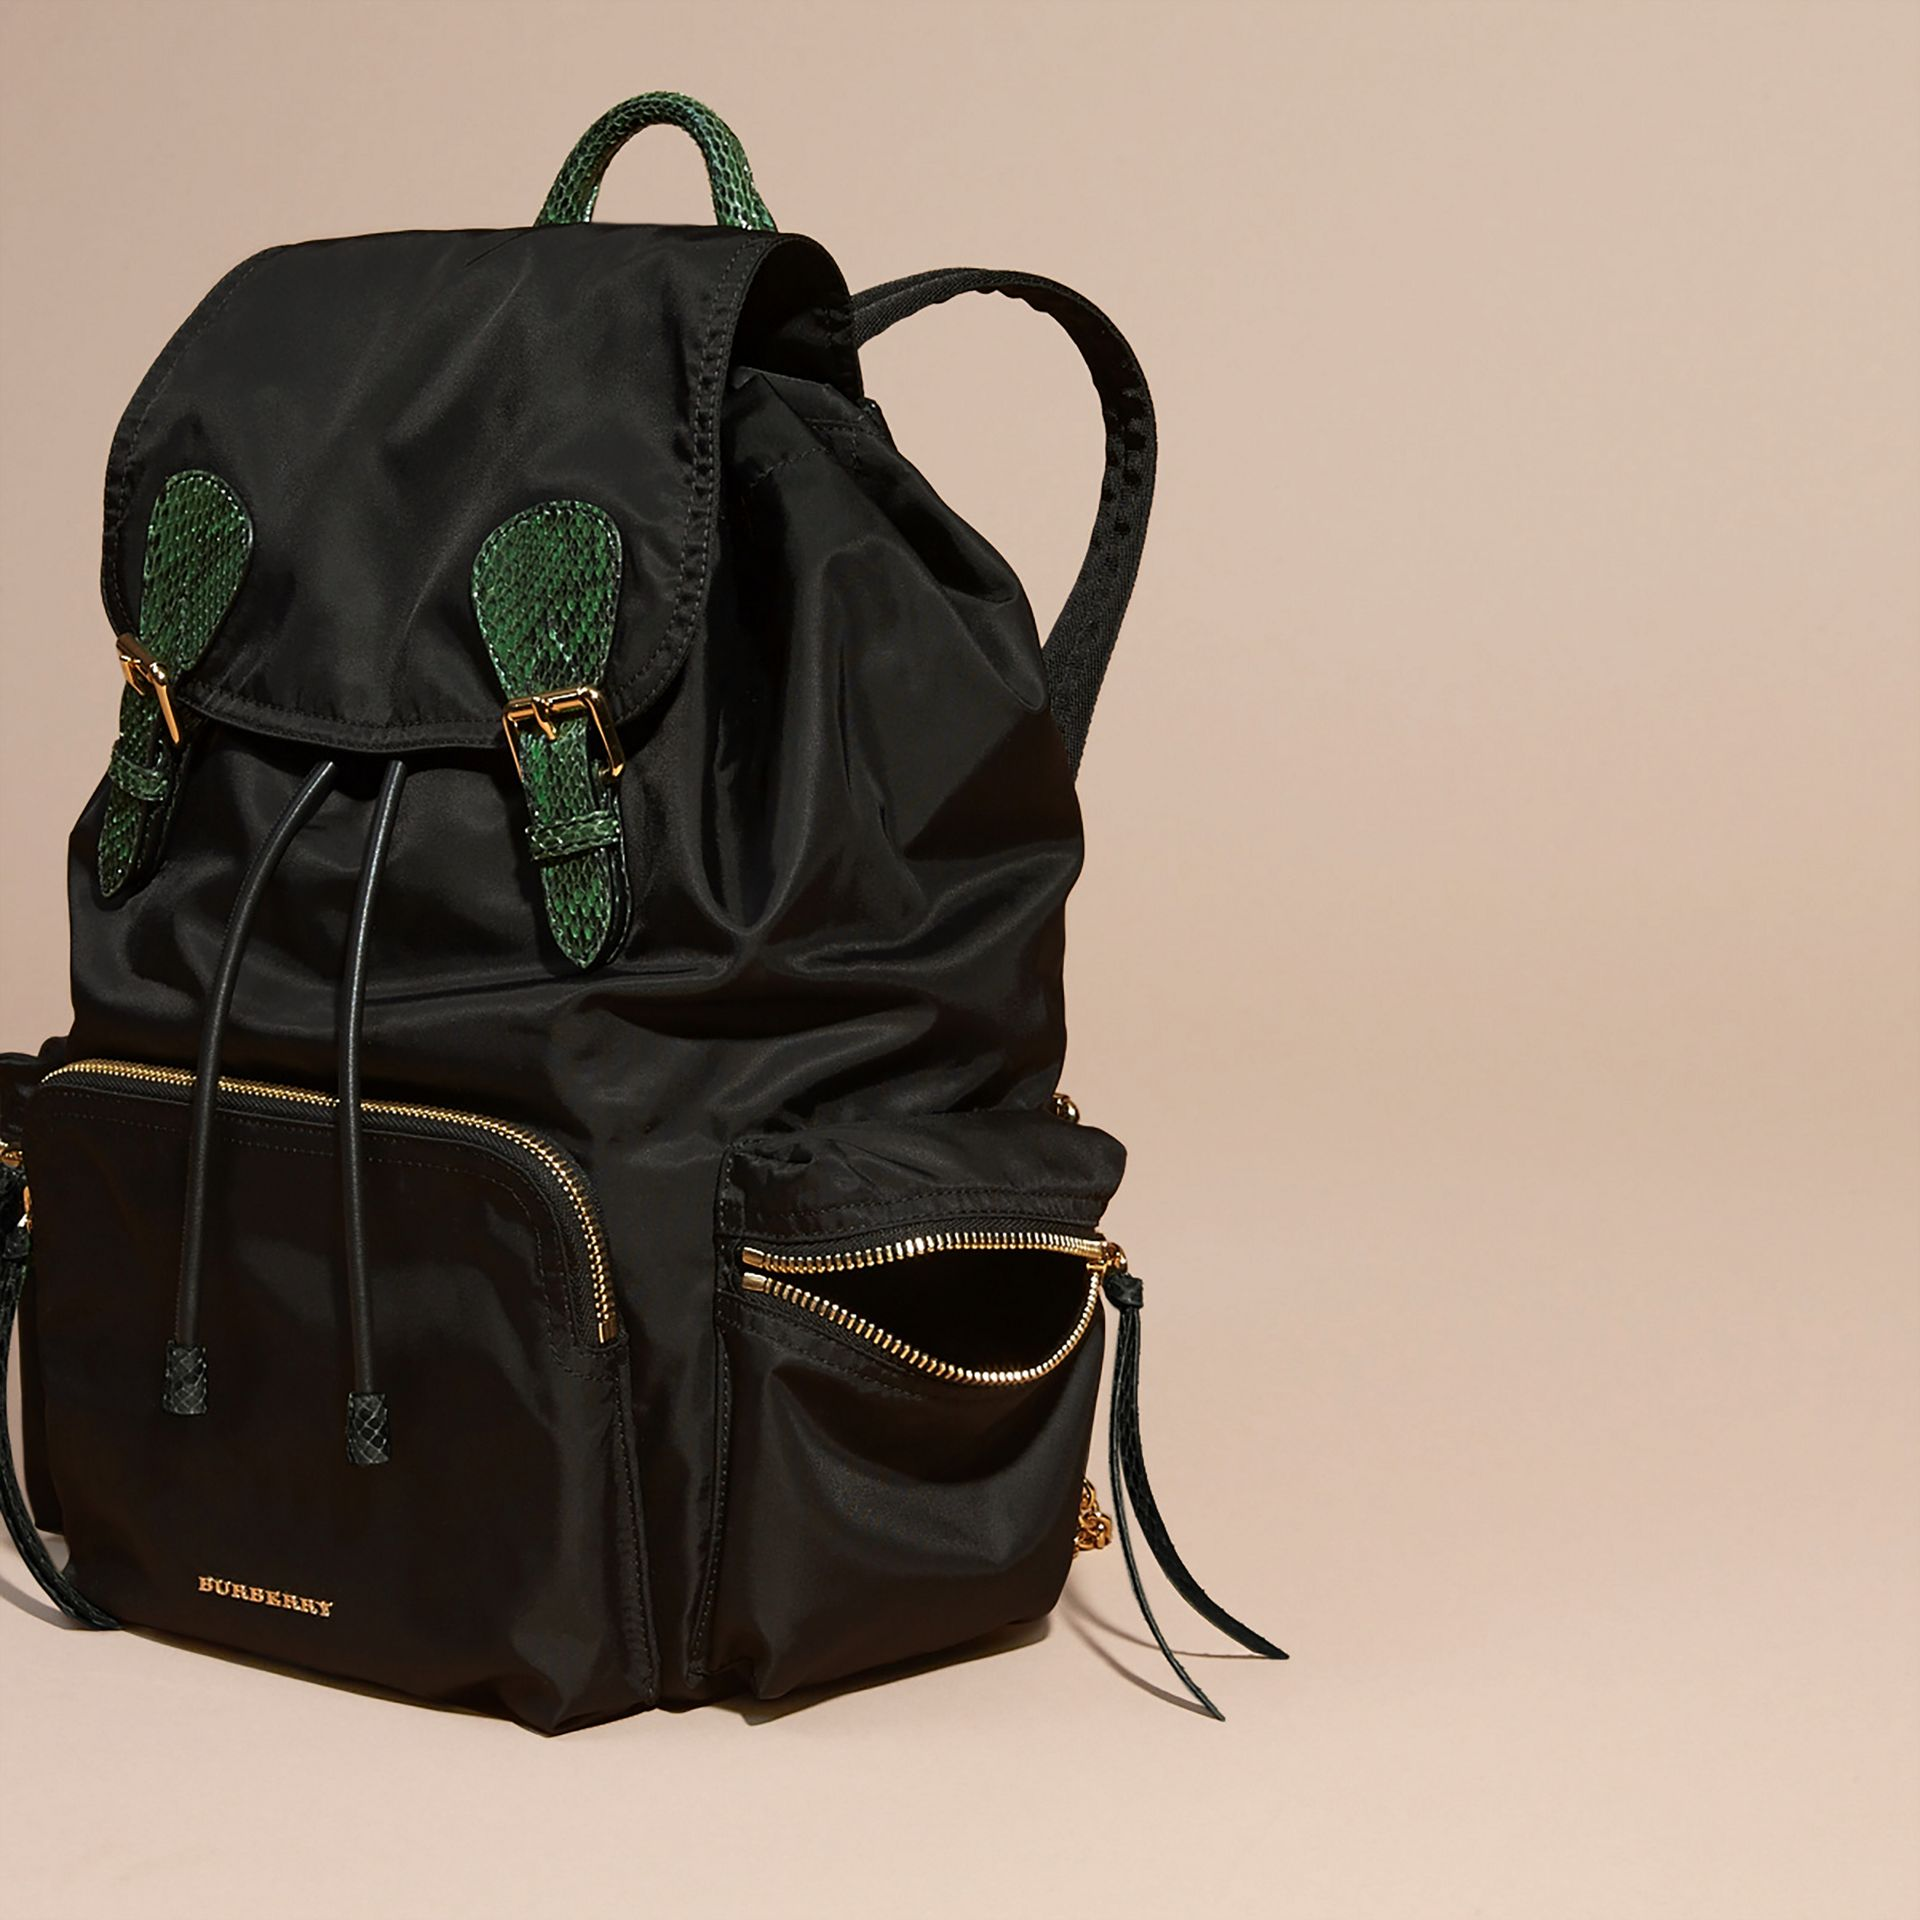 Black/bright green The Large Rucksack in Technical Nylon and Snakeskin Black/bright Green - gallery image 6